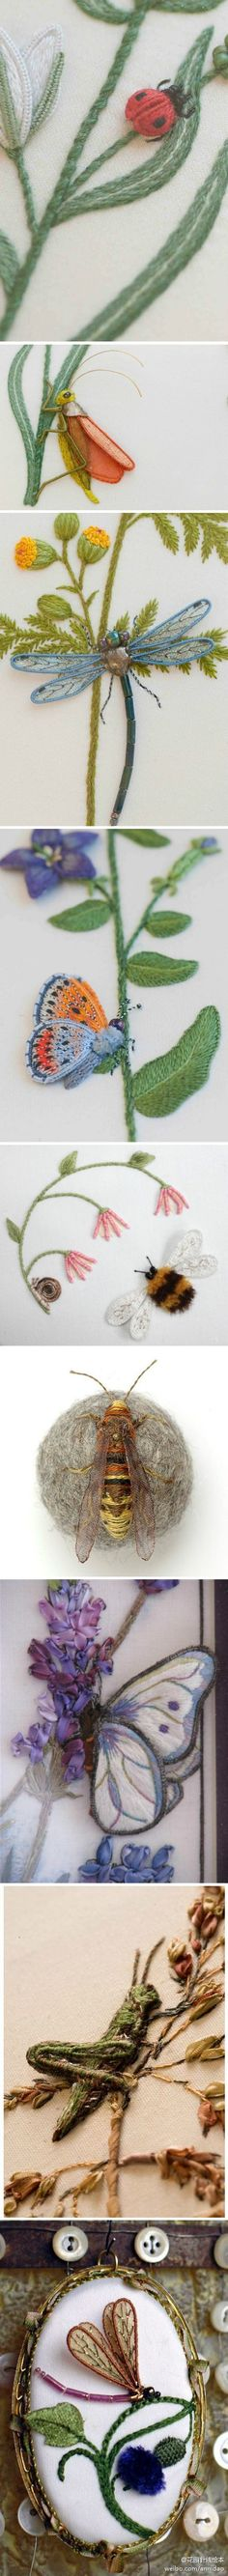 立体刺绣昆虫篇  insect embroidery no instructions just images